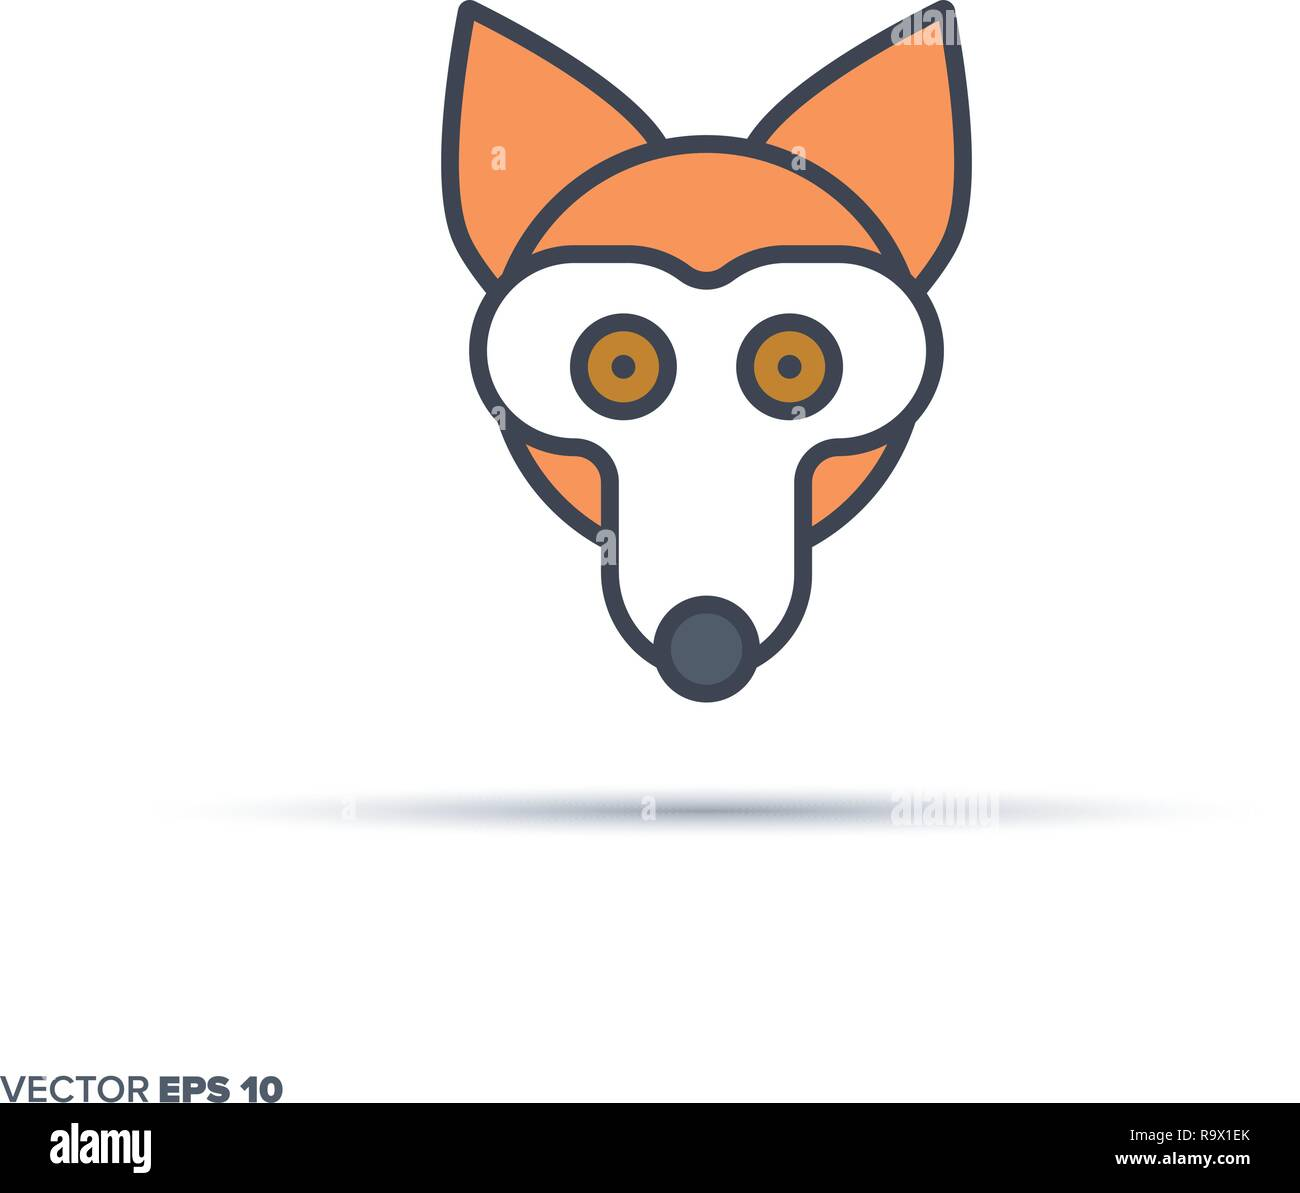 Cute fox face outline vector icon with color fill. Funny animal illustration. - Stock Vector